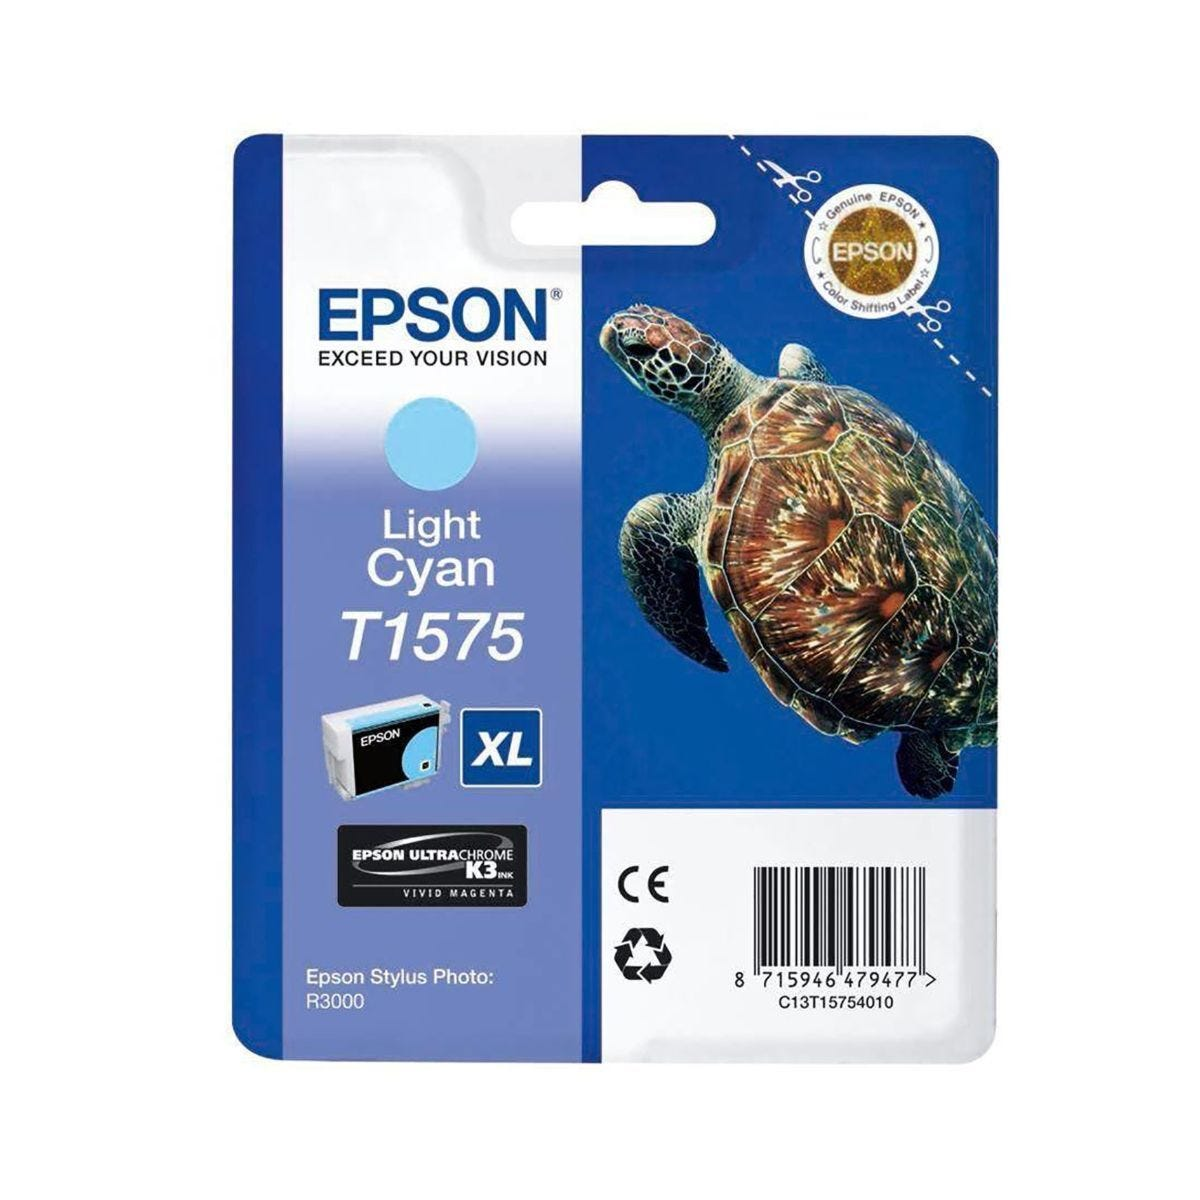 Epson R3000 Light Cyan Ink Cartridge